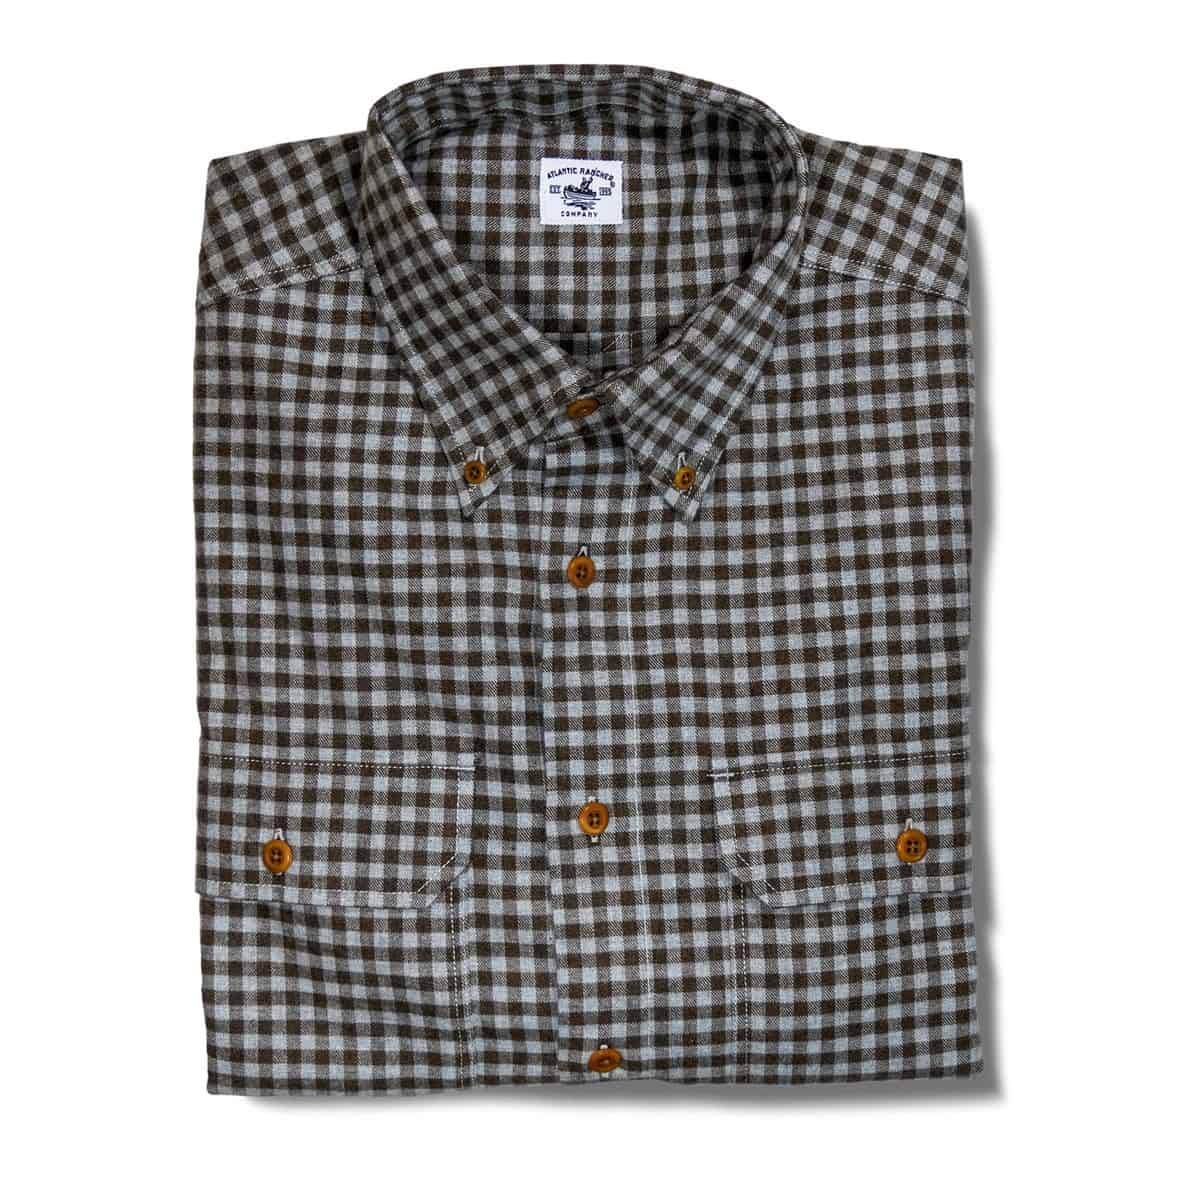 Buy The Bayman's Flannel Button-Down Collar Shirt - Brown Check